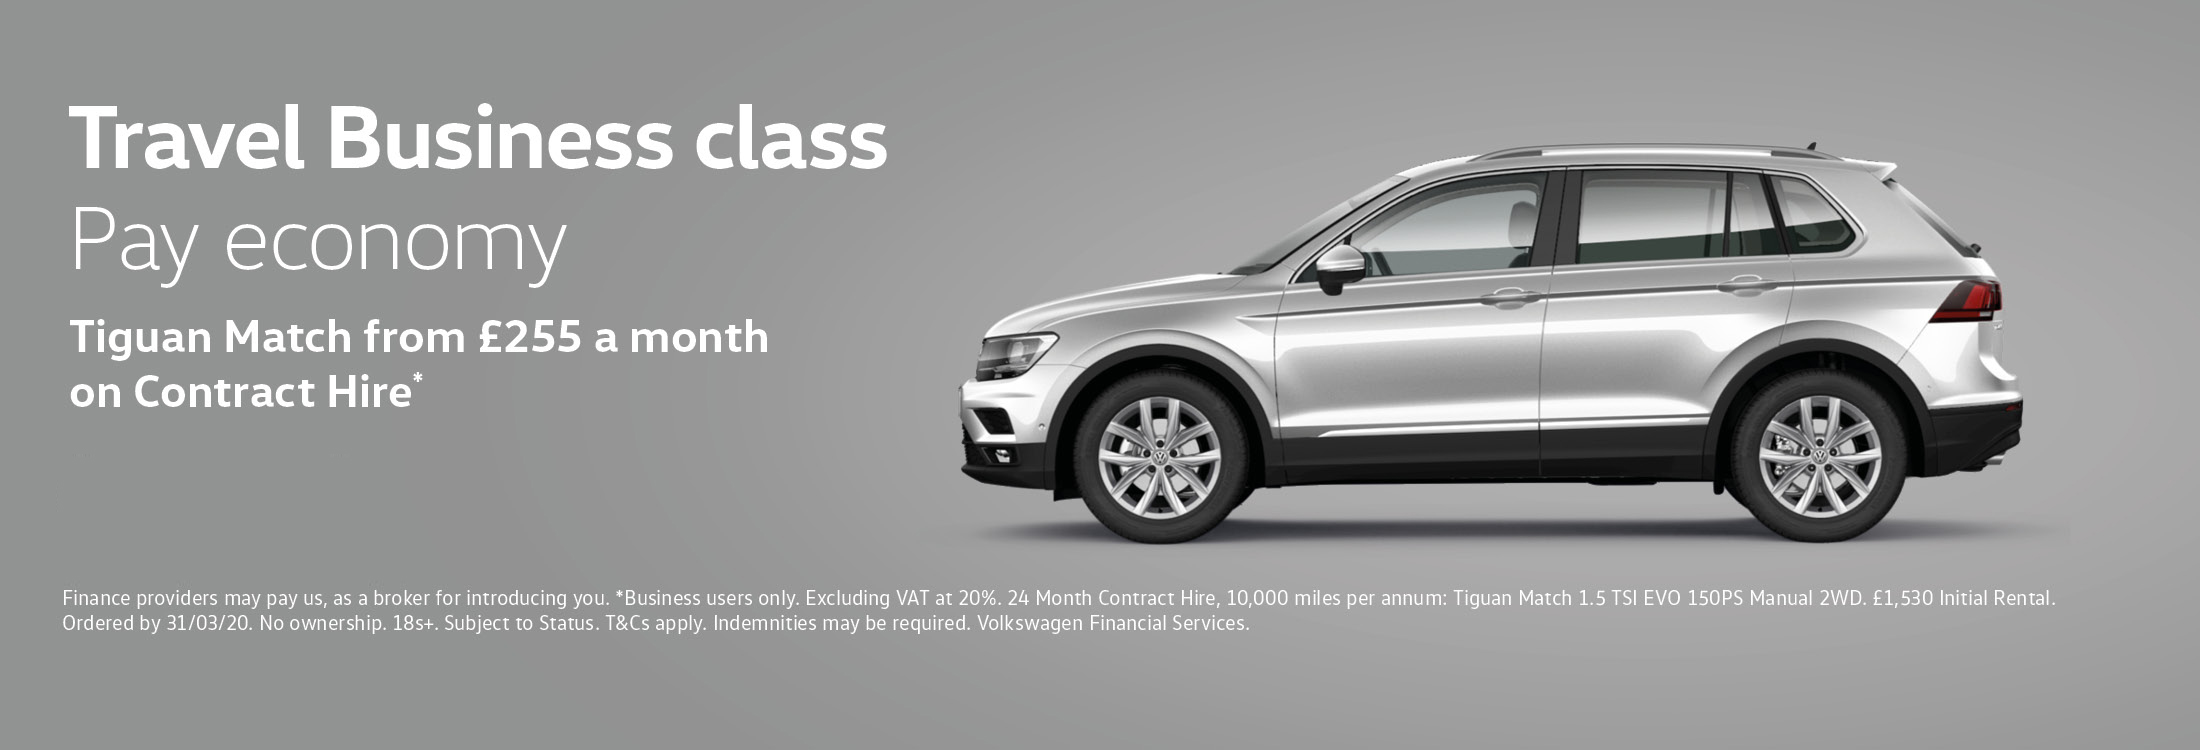 tiguan match travel business class